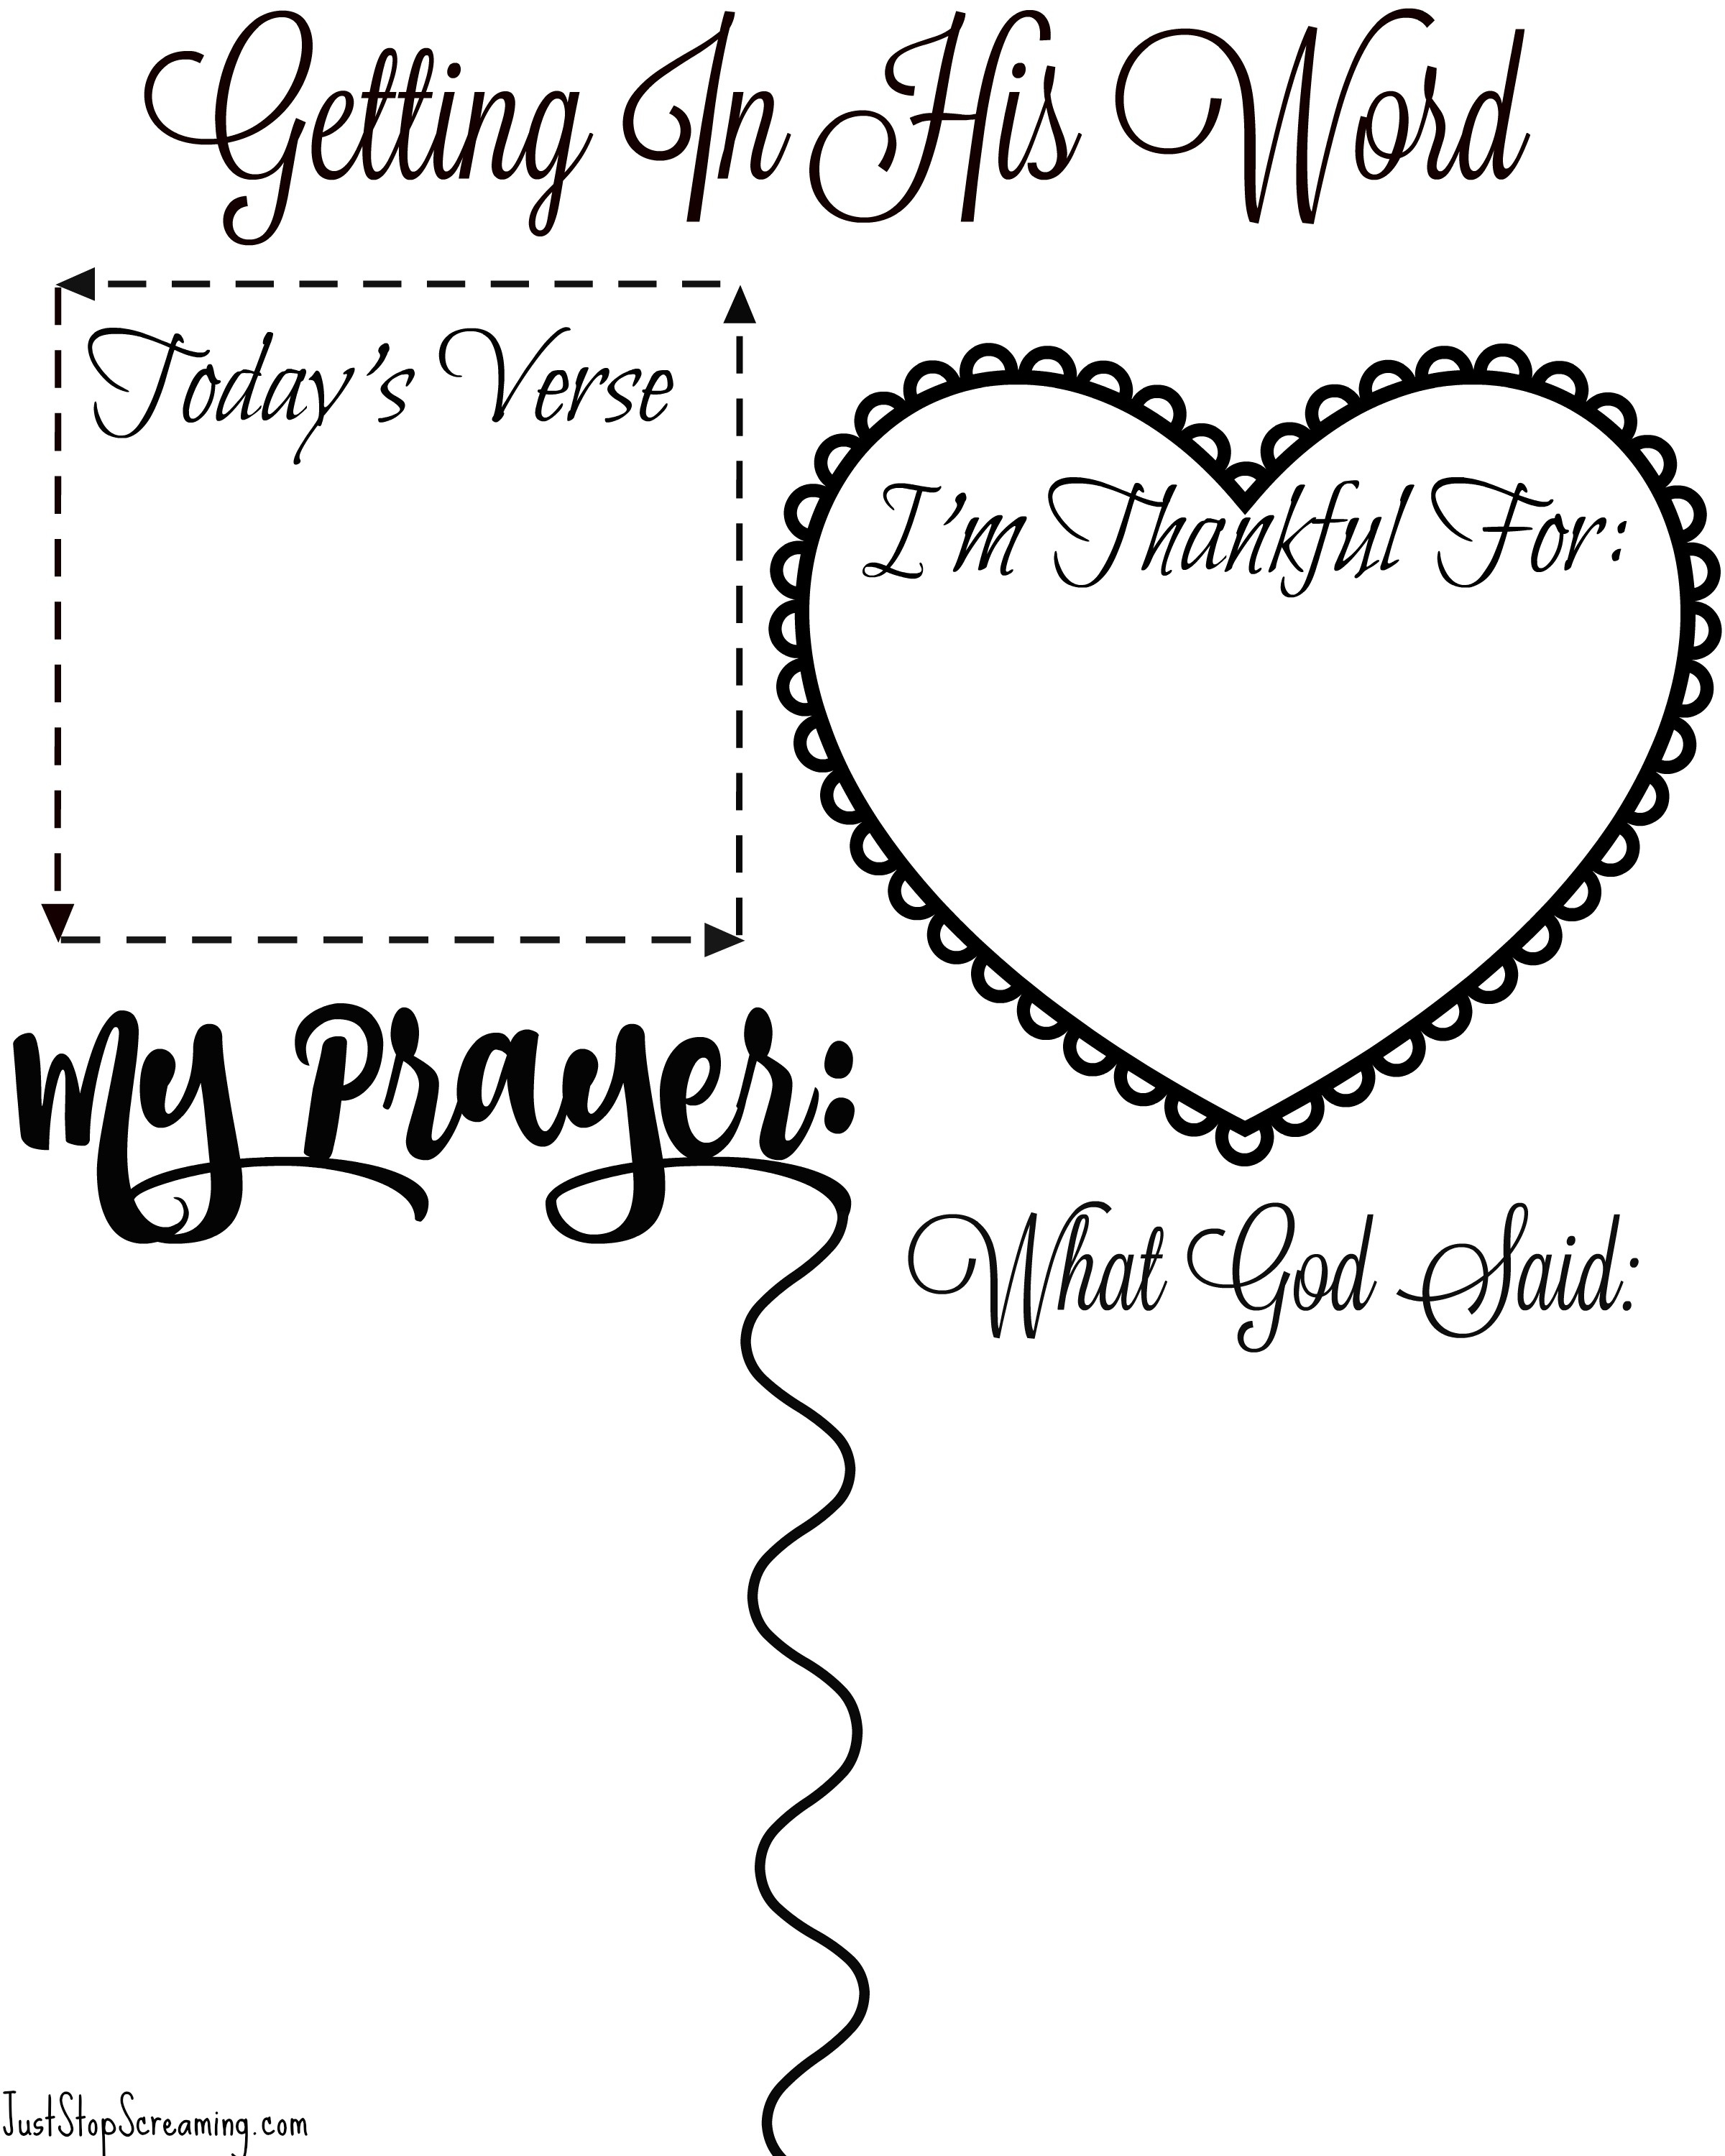 Free Bible Study Printable For Adults And Kids - Free Printable Bible Study Lessons For Adults